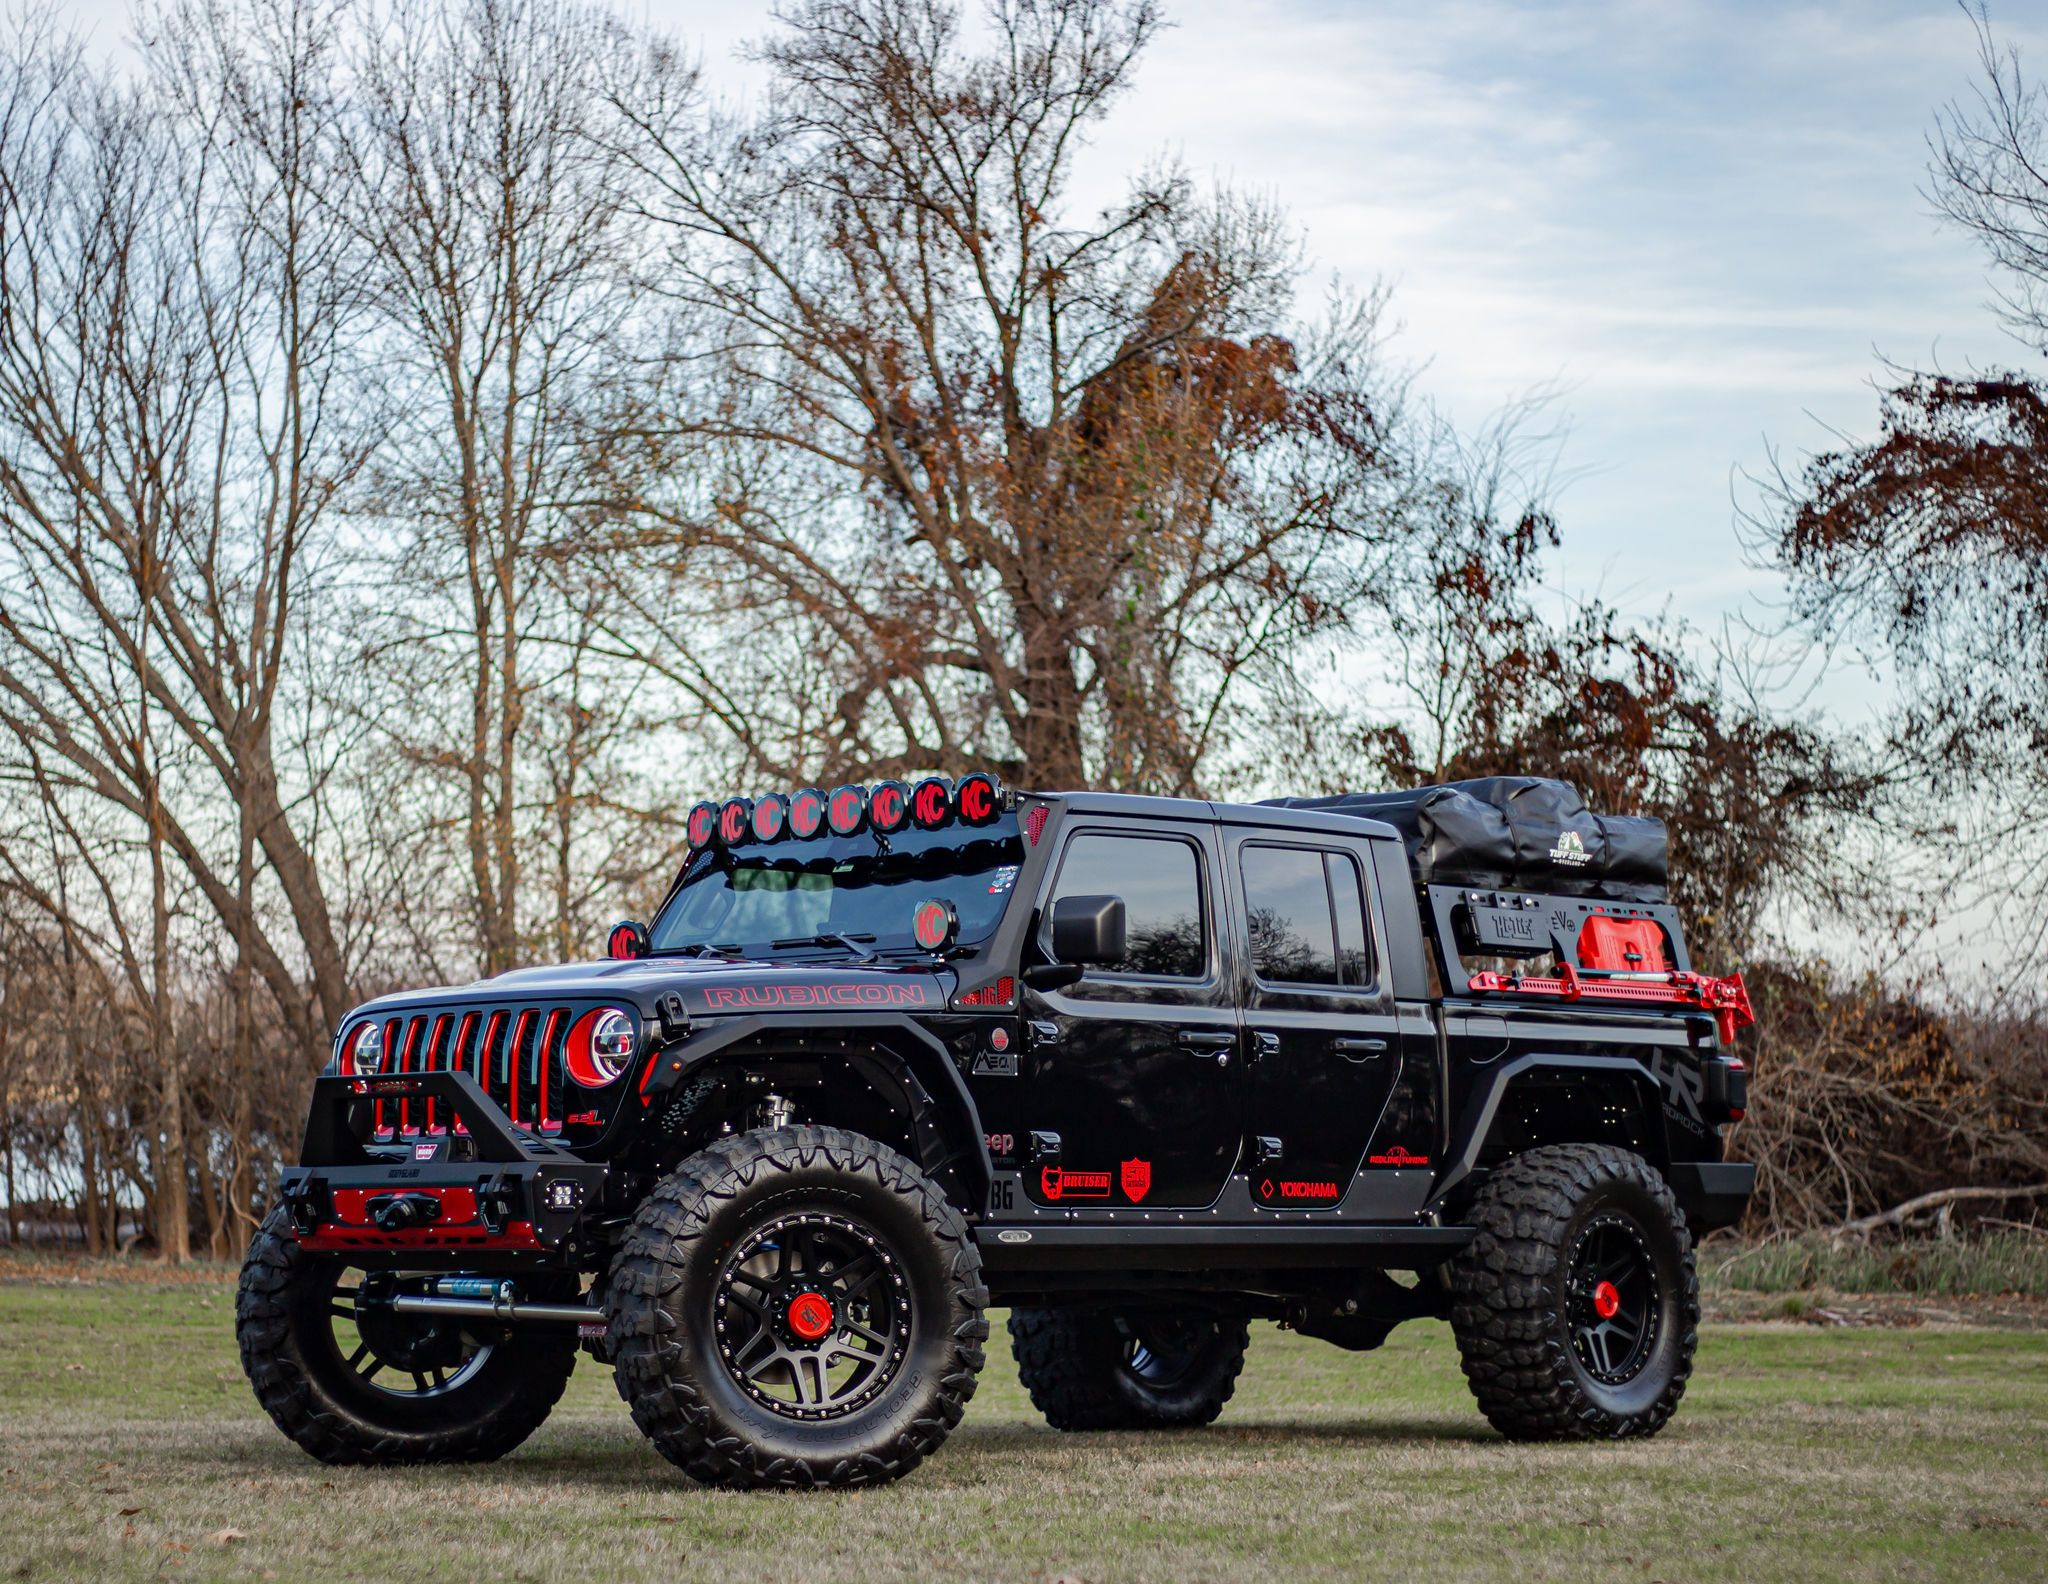 2020 Jeep Gladiator In 2020 Offroad Jeep Jeep Wrangler Truck Jeep Gladiator